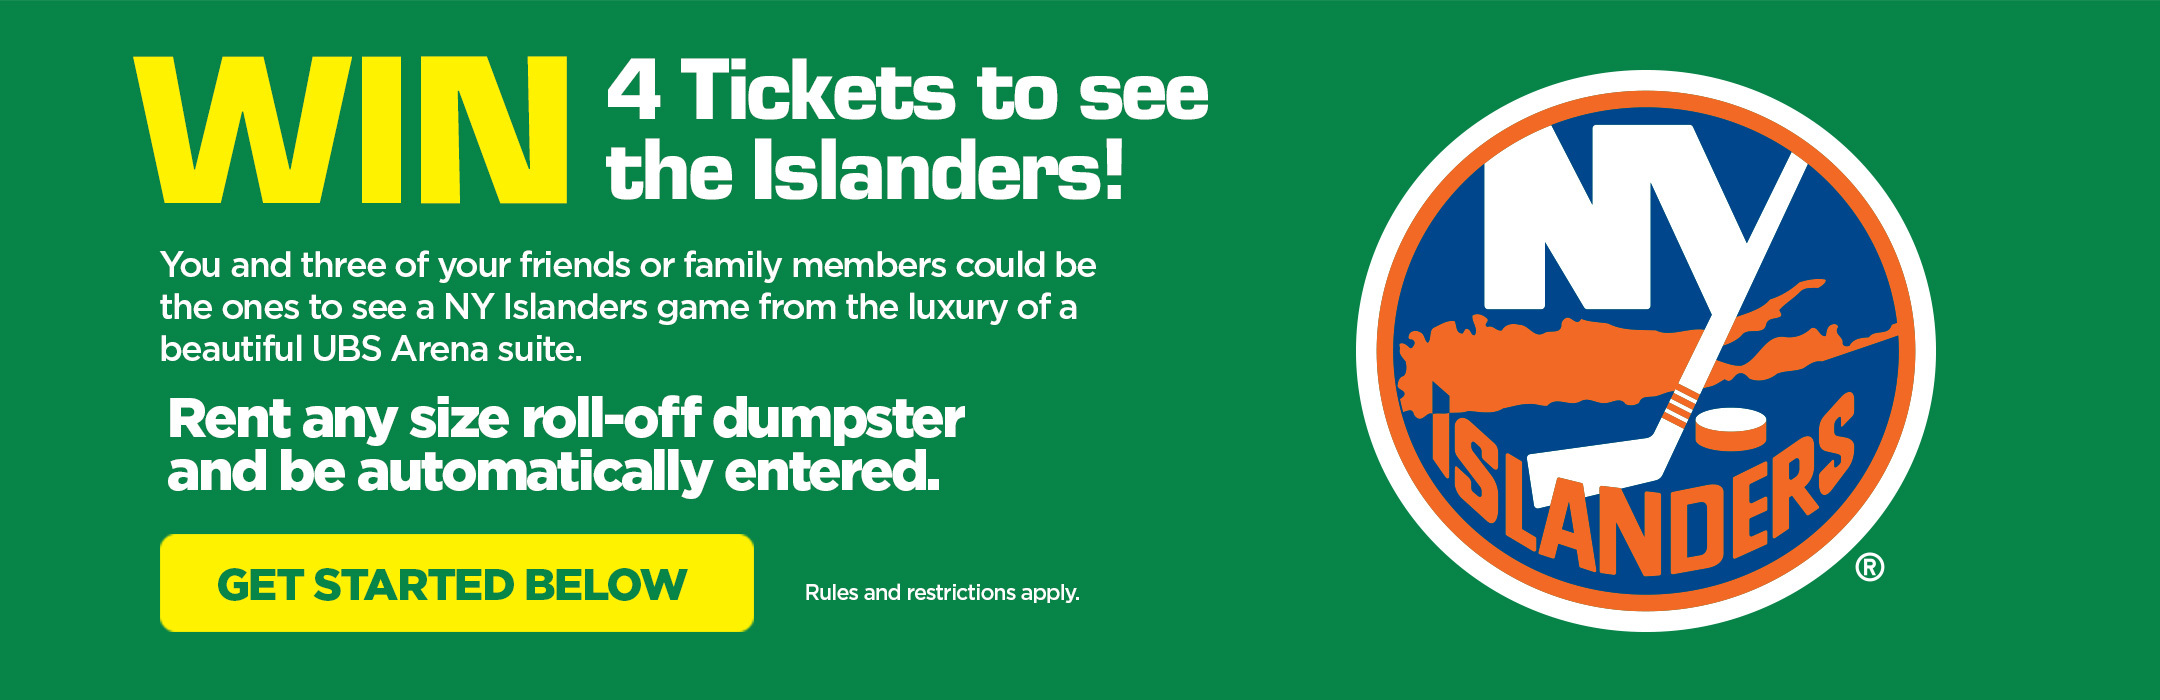 Win 4 Tickets to see the Islanders! Rent any roll-off to be automatically entered, get started below.